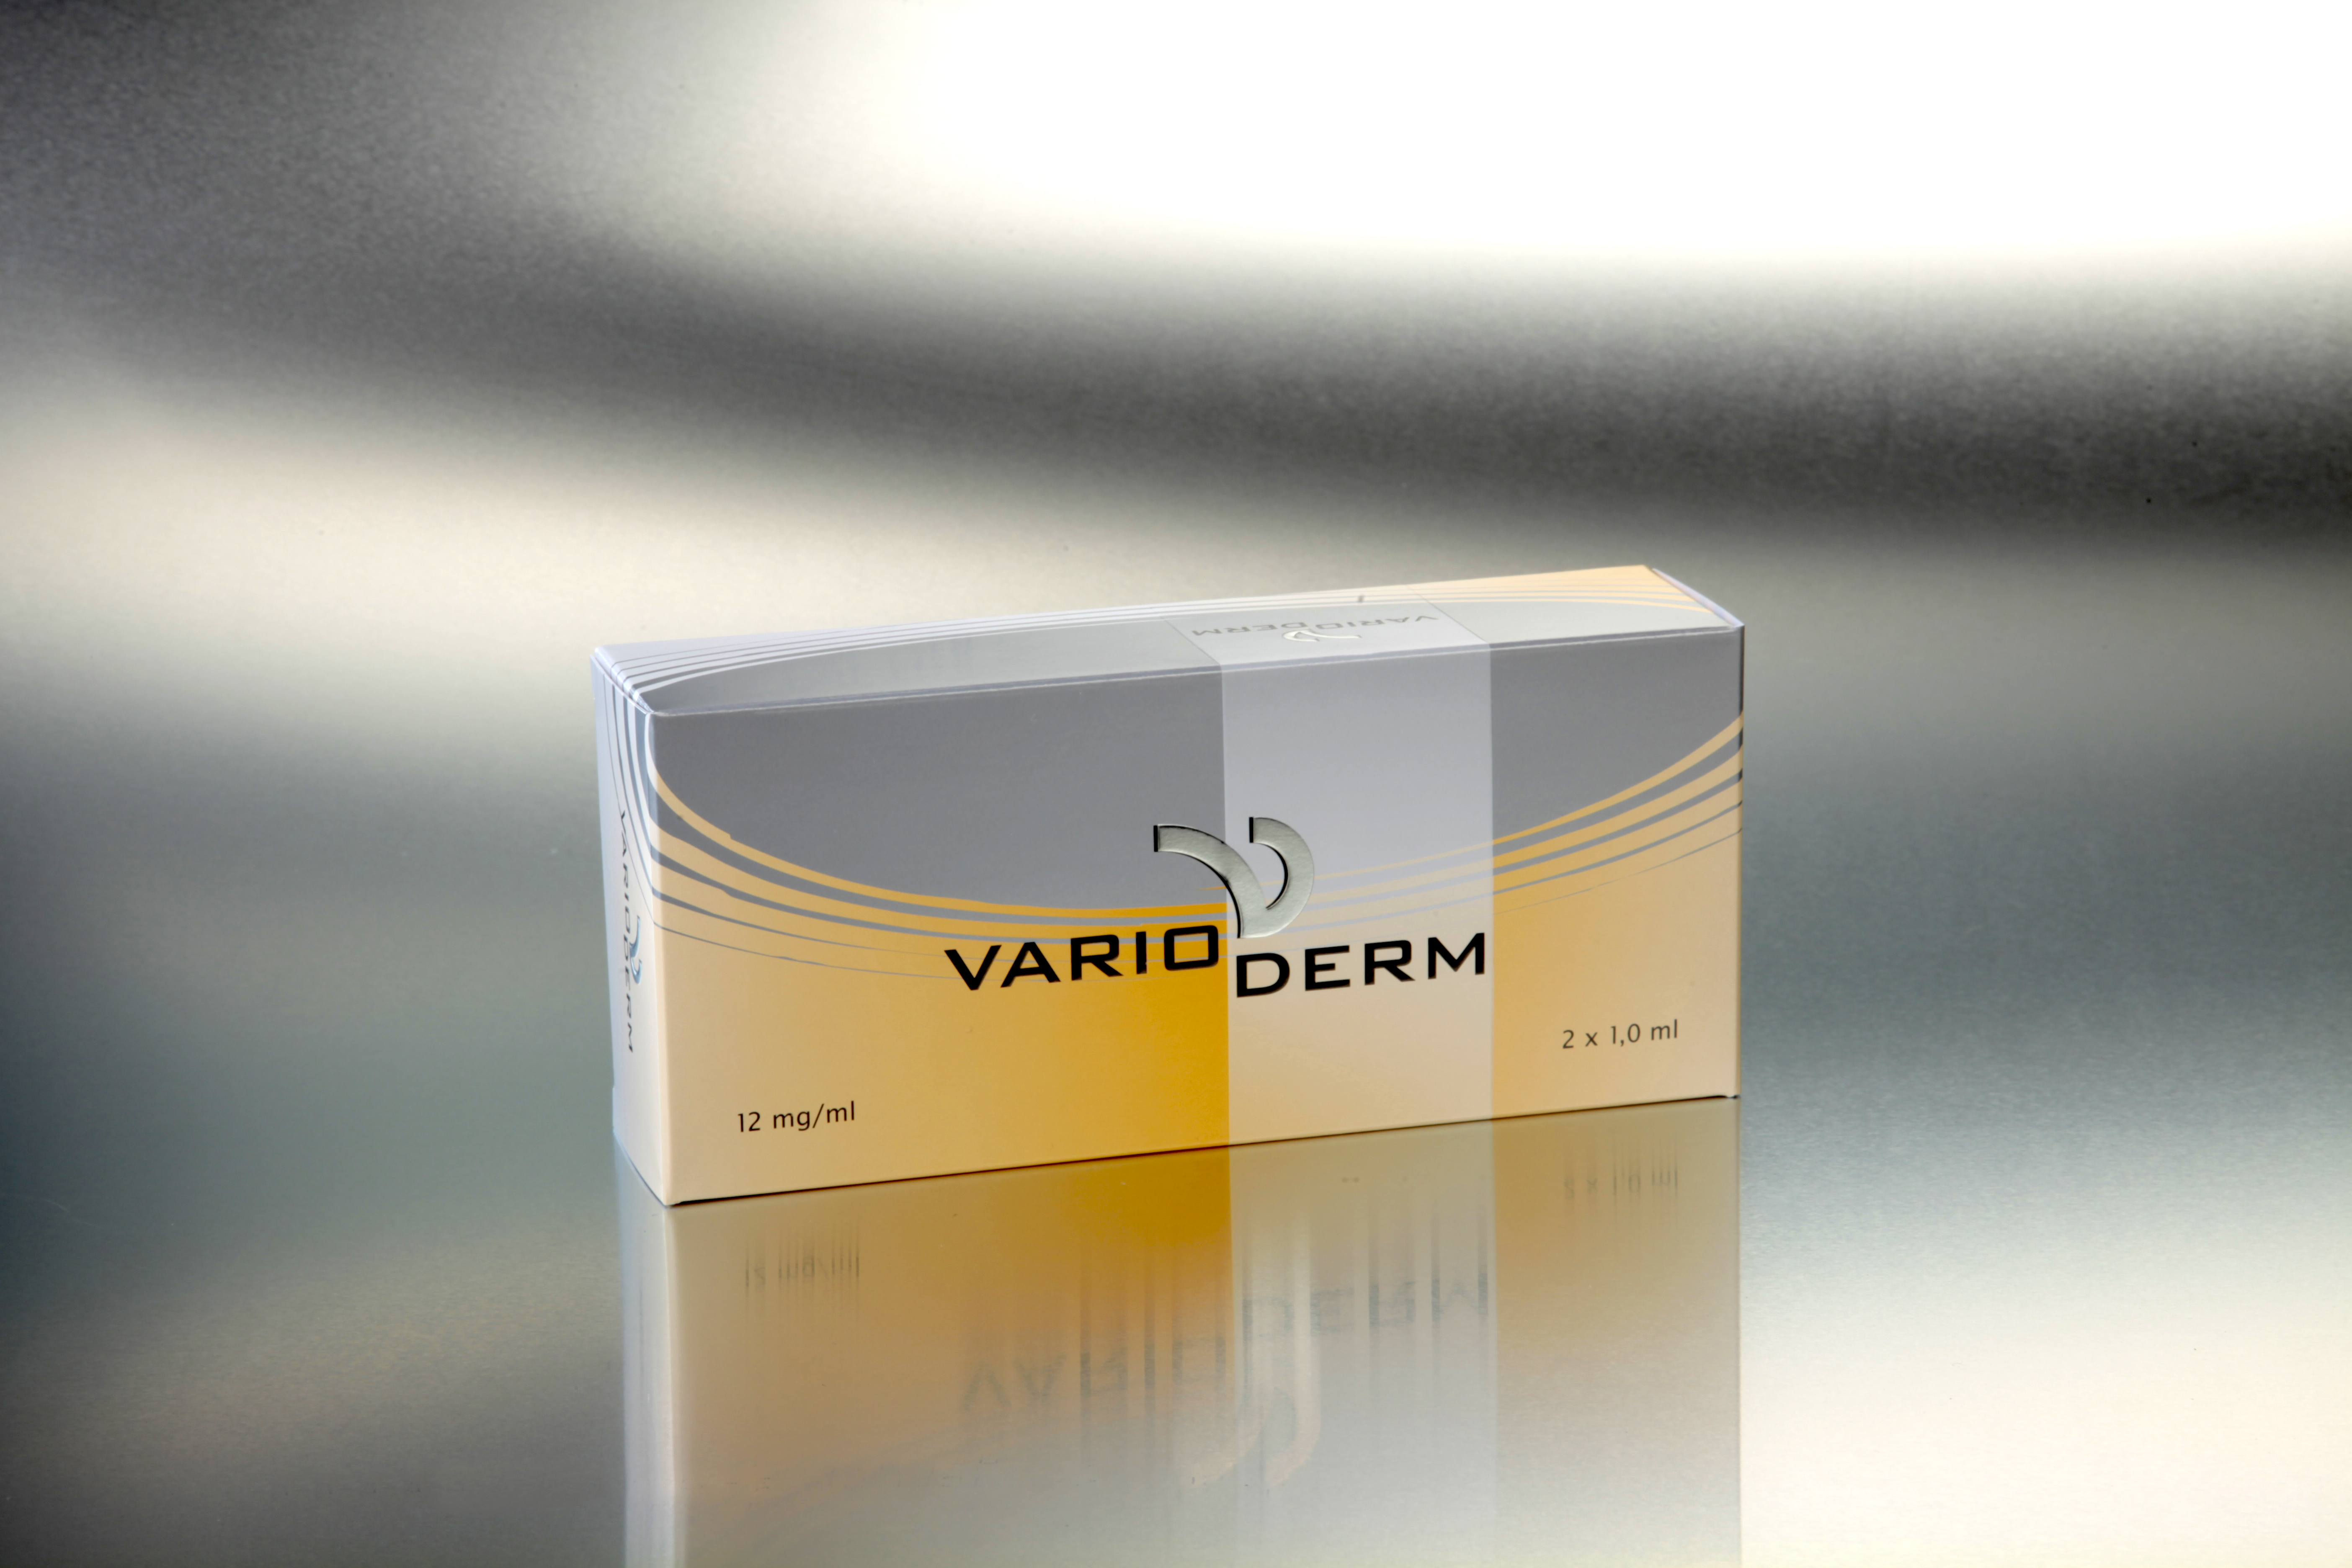 20121112 Varioderm beauty shot